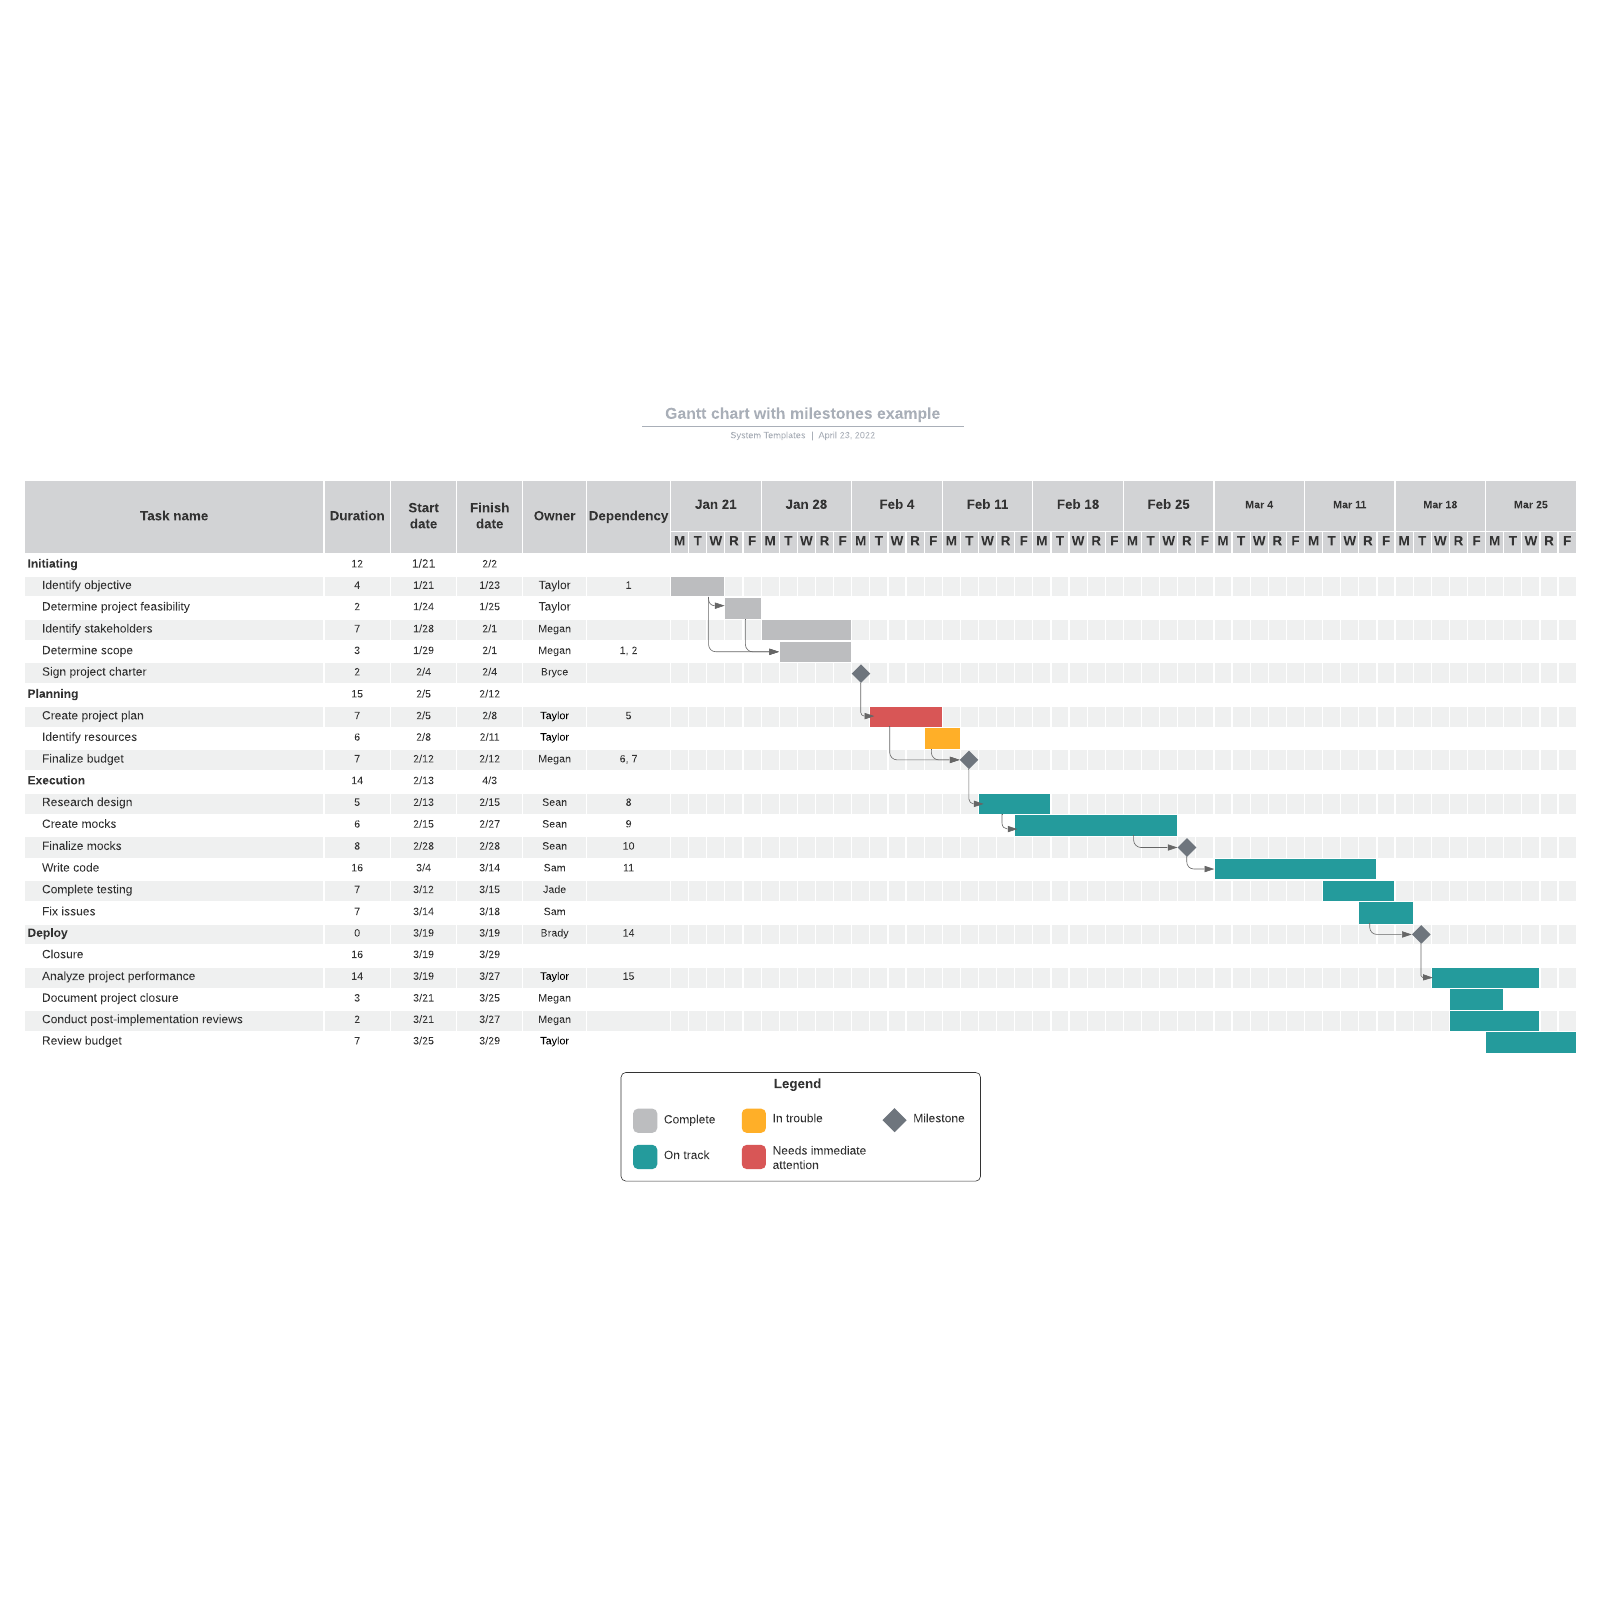 Gantt chart with milestones example